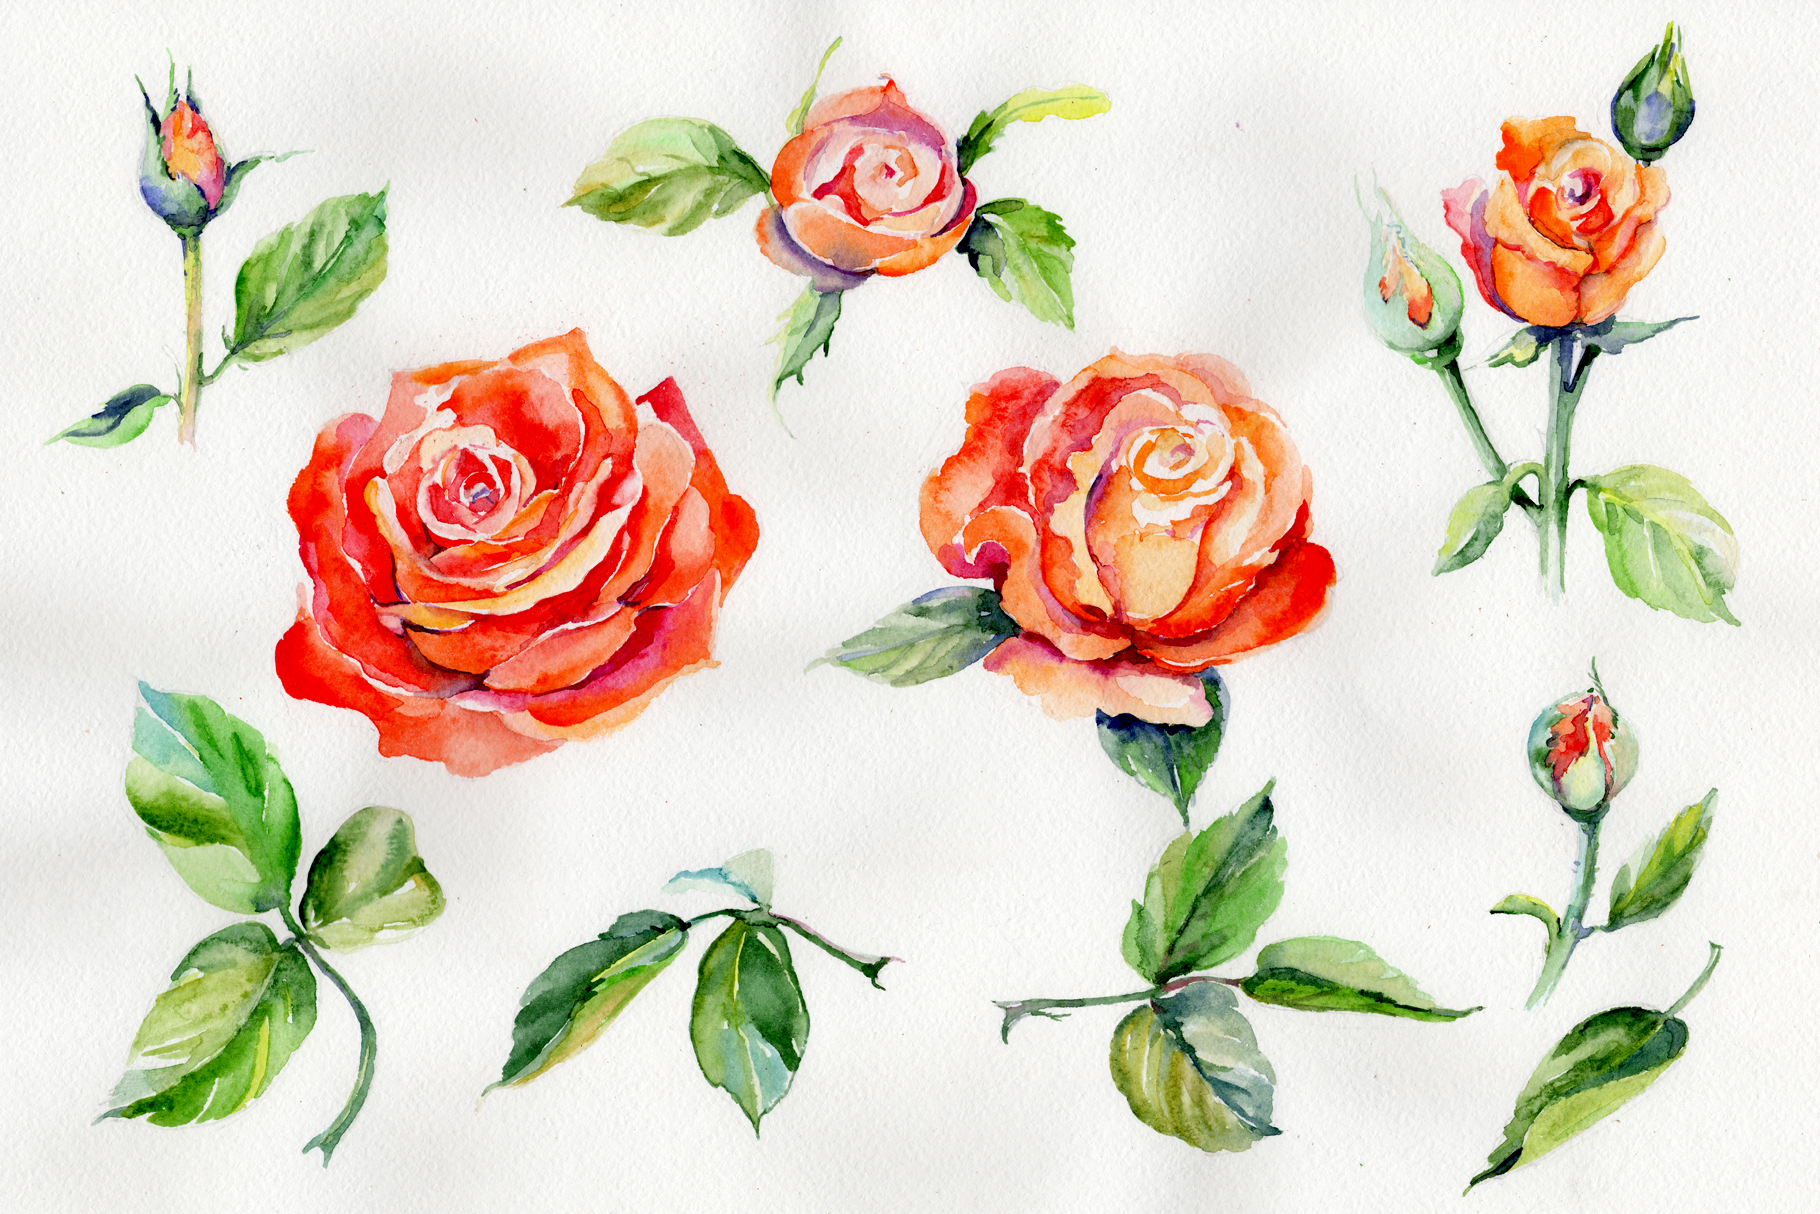 Light Red Rose Png Watercolor Flower Set Graphic By Mystocks